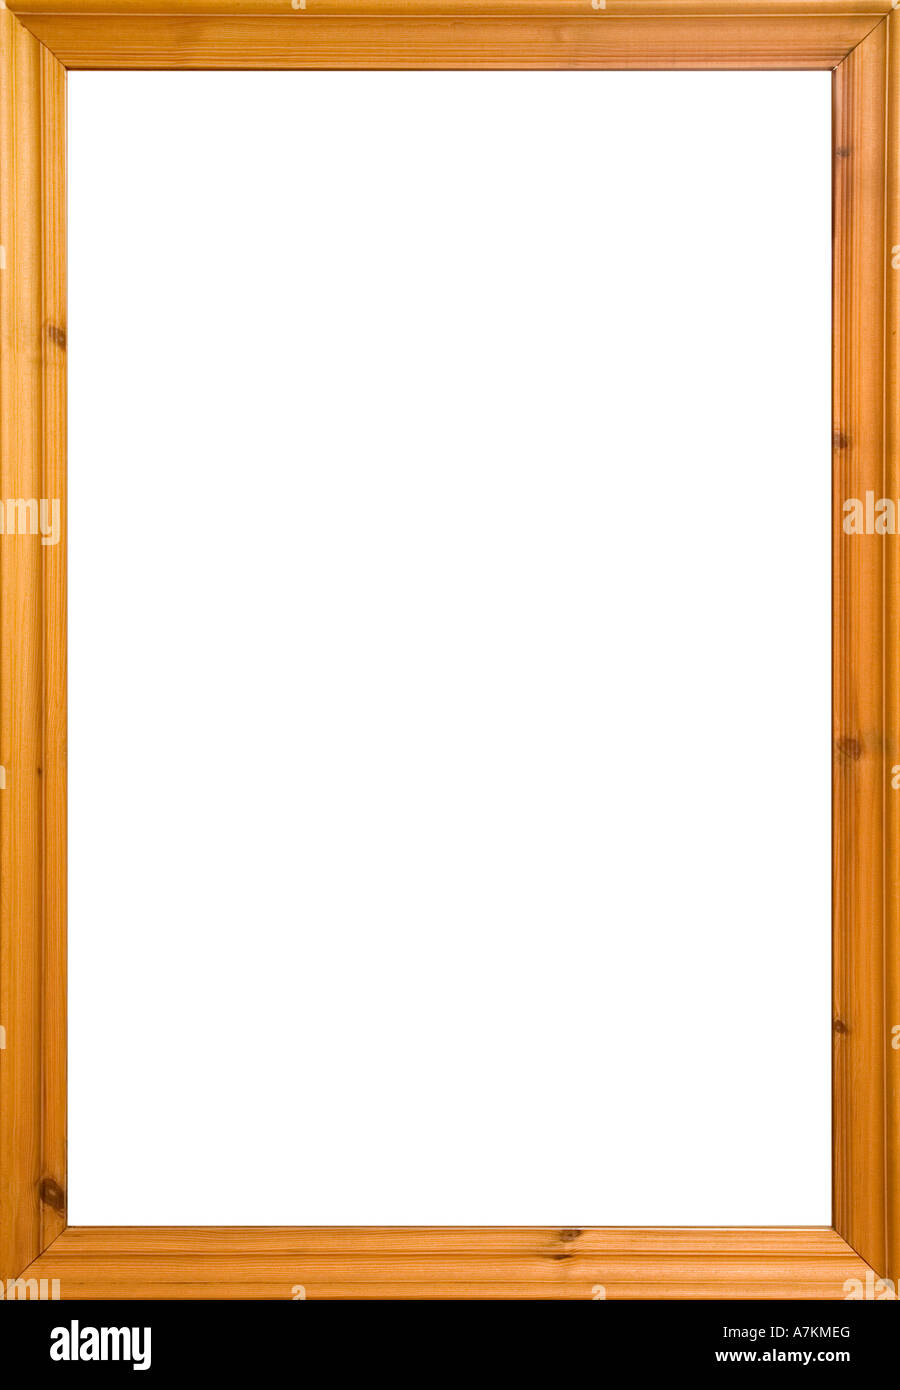 Wooden frame with white isolated area. Could also be used as a Stock ...